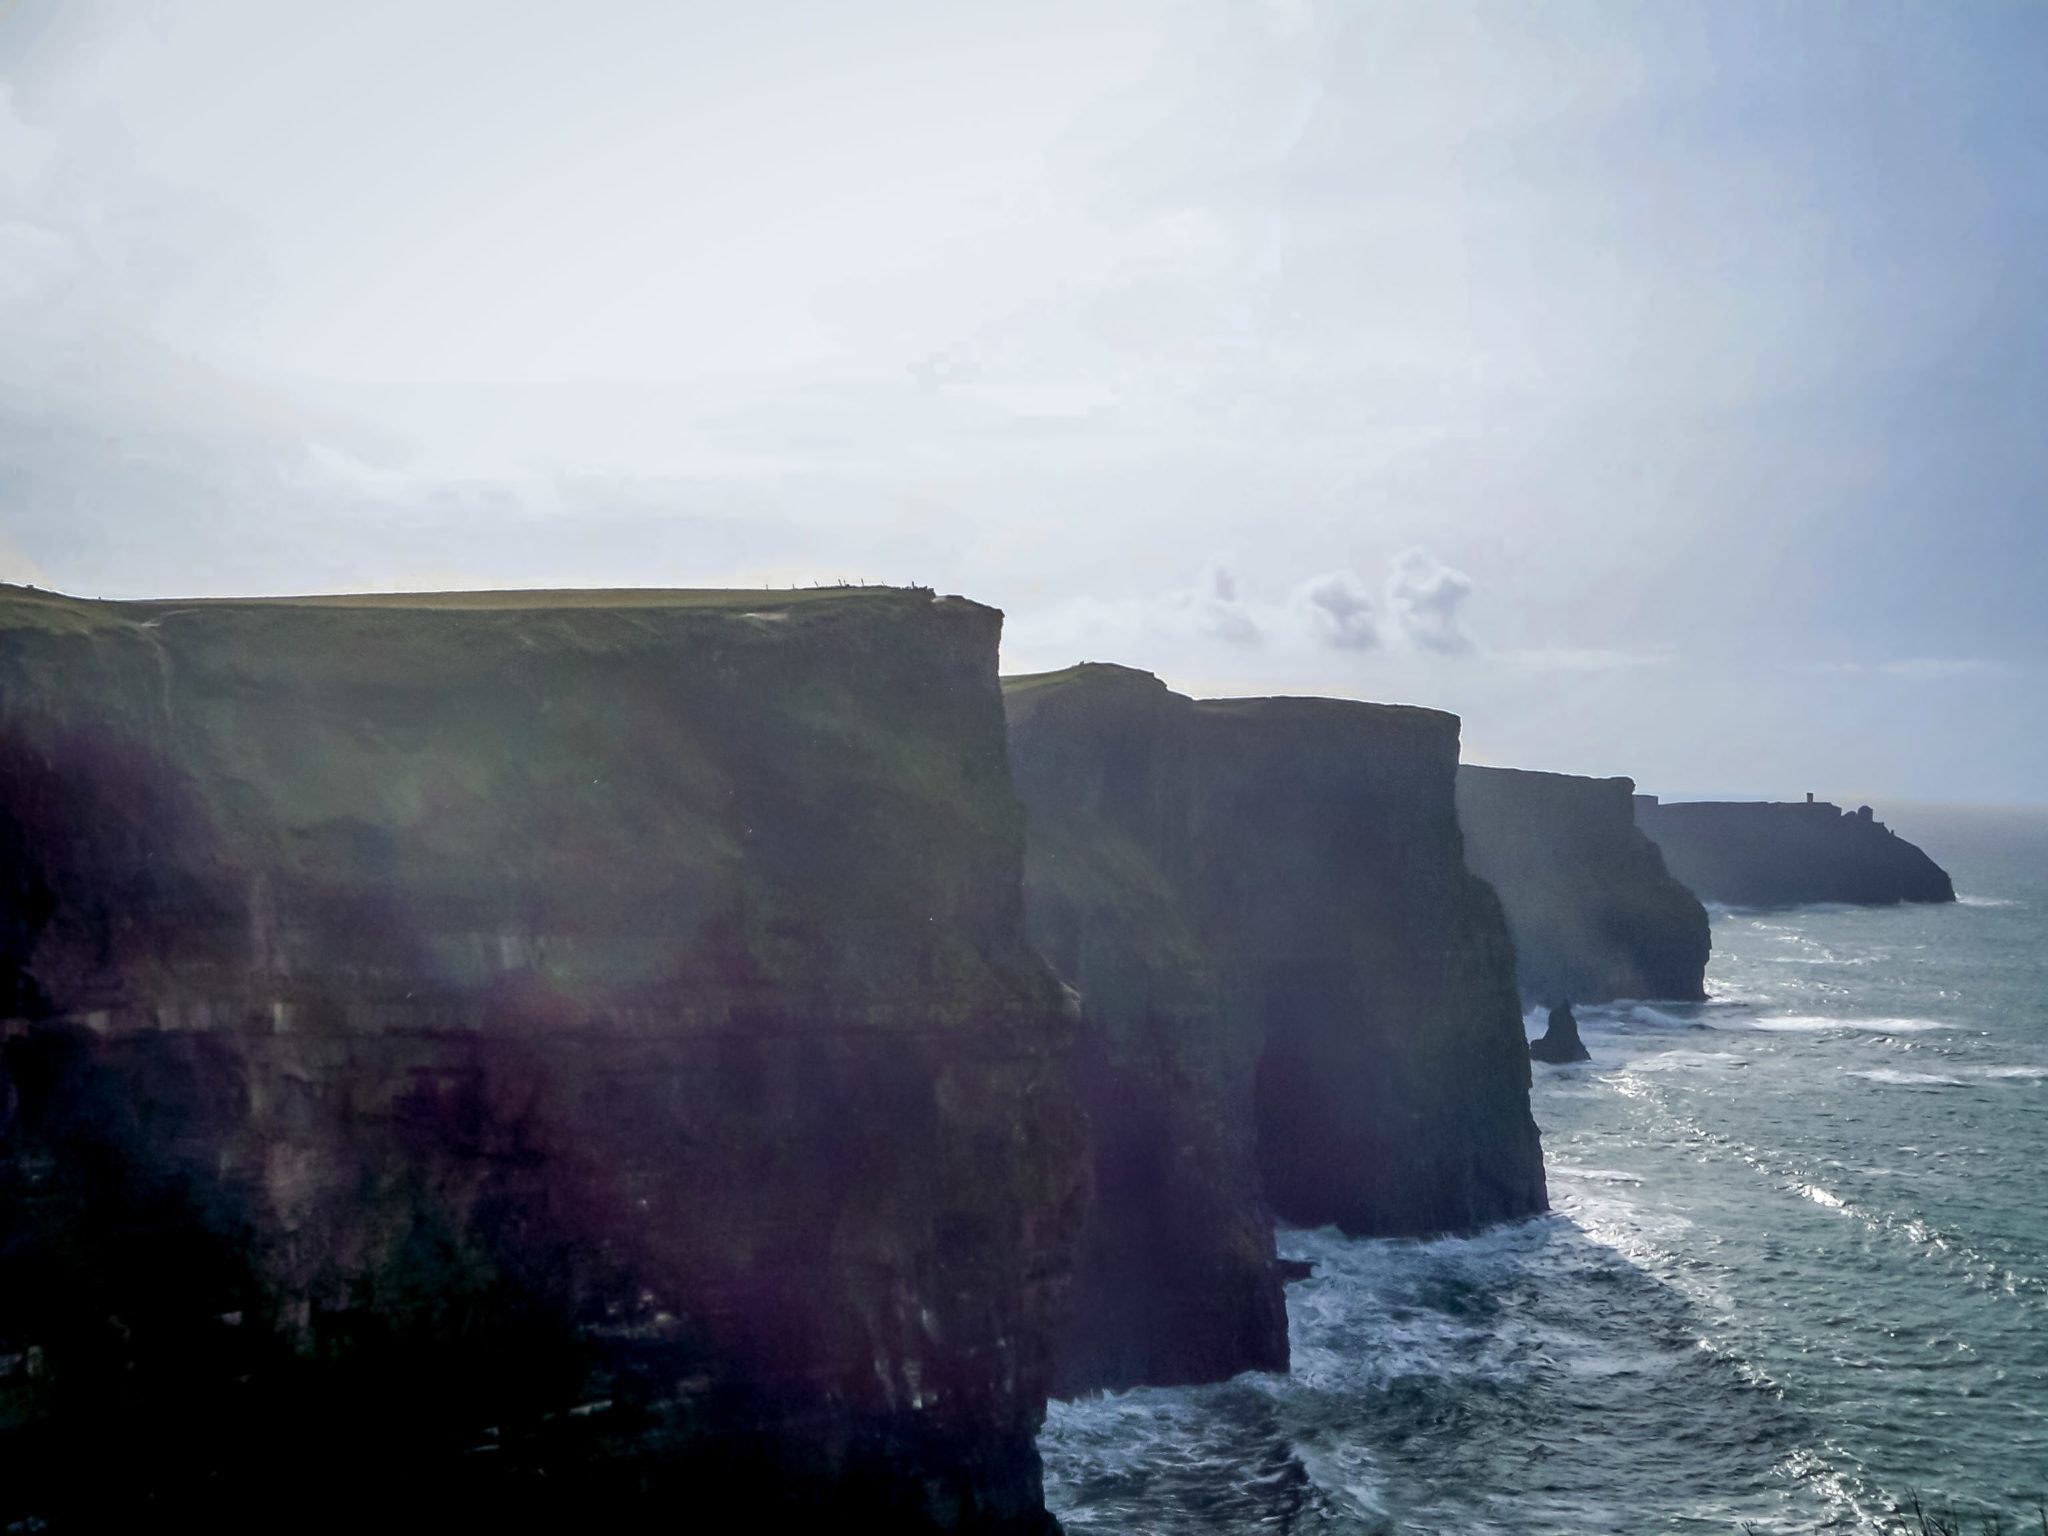 The undulating Cliffs of Moher drop straight into the ocean on Ireland's west coast